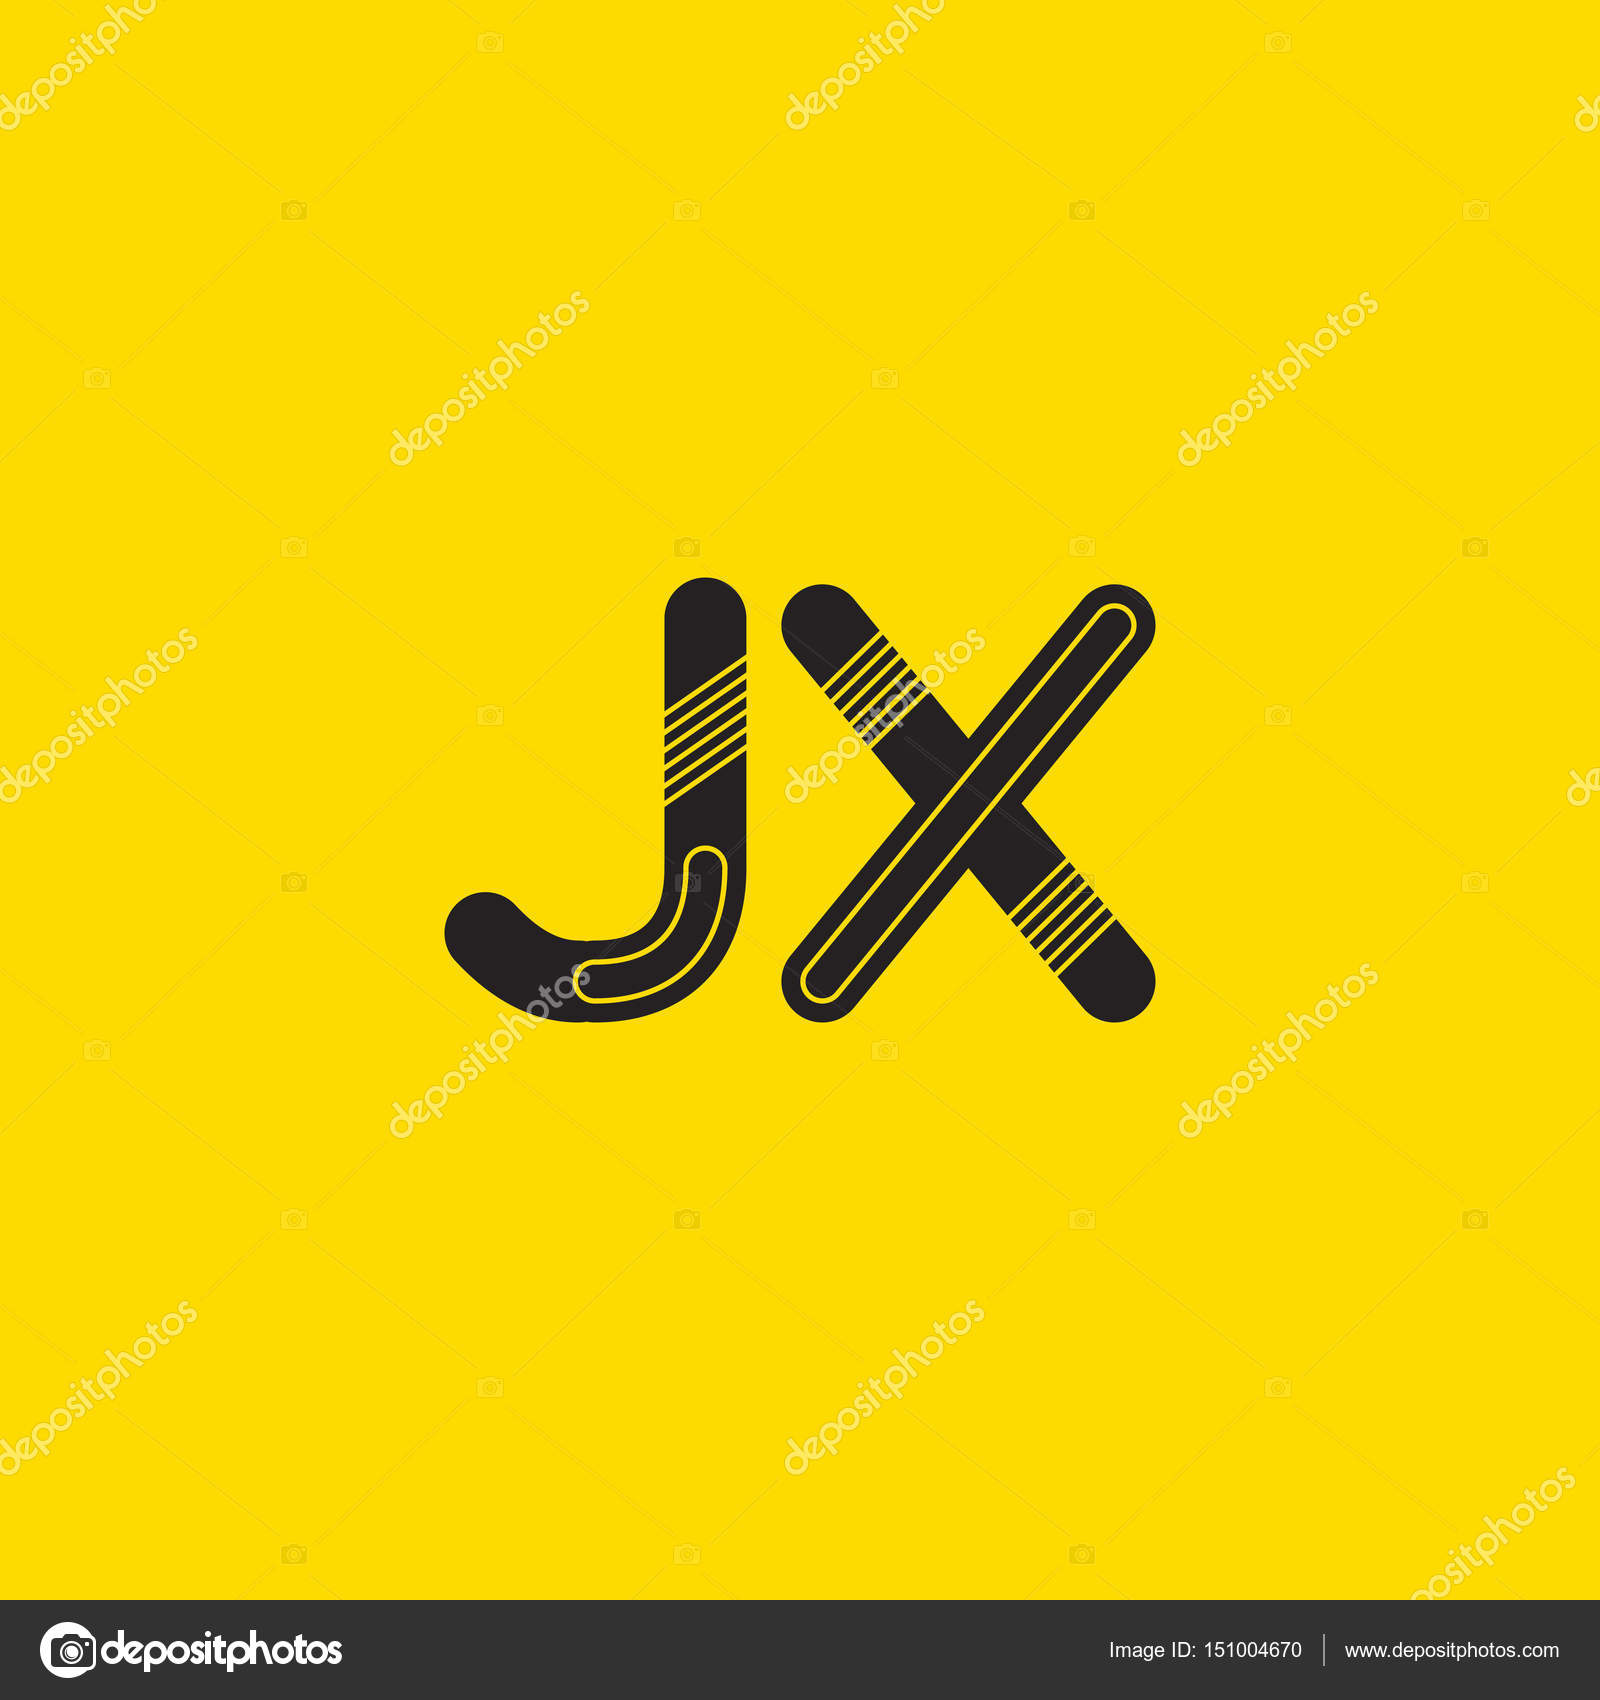 Jx Connected Letters Logo Stock Vector